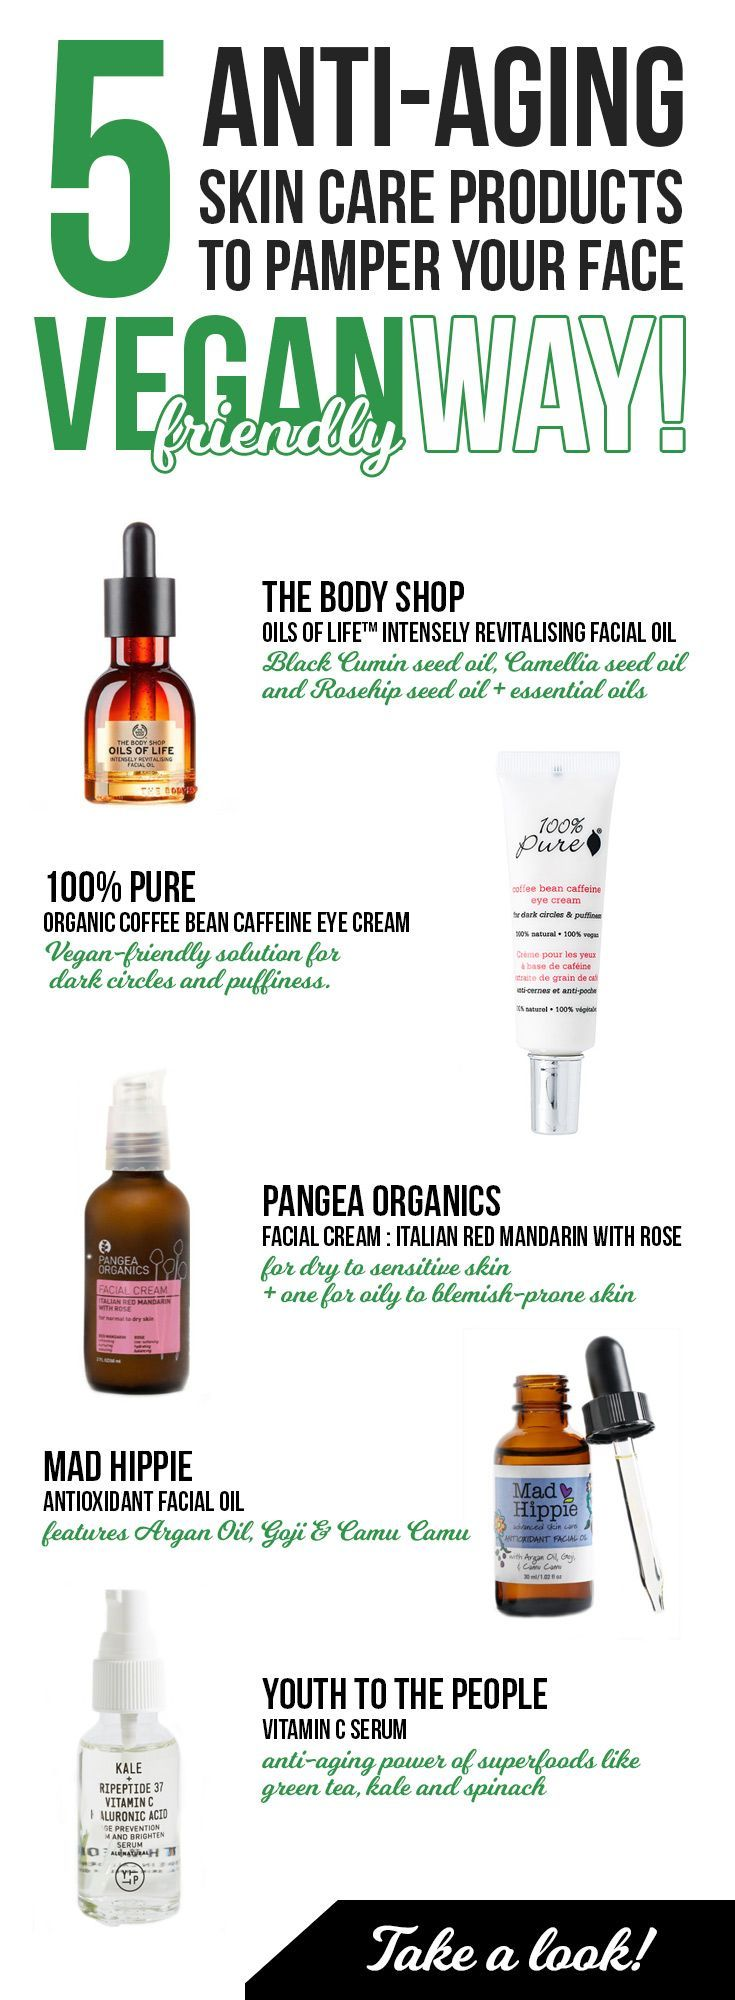 Anti-aging skin care products for face, 5 best, cause vegan-friendly! Best serums, oils and face creams for aging, skin blemishes and under eye puffiness. Vegan products for dry to sensitive skin you just must check!